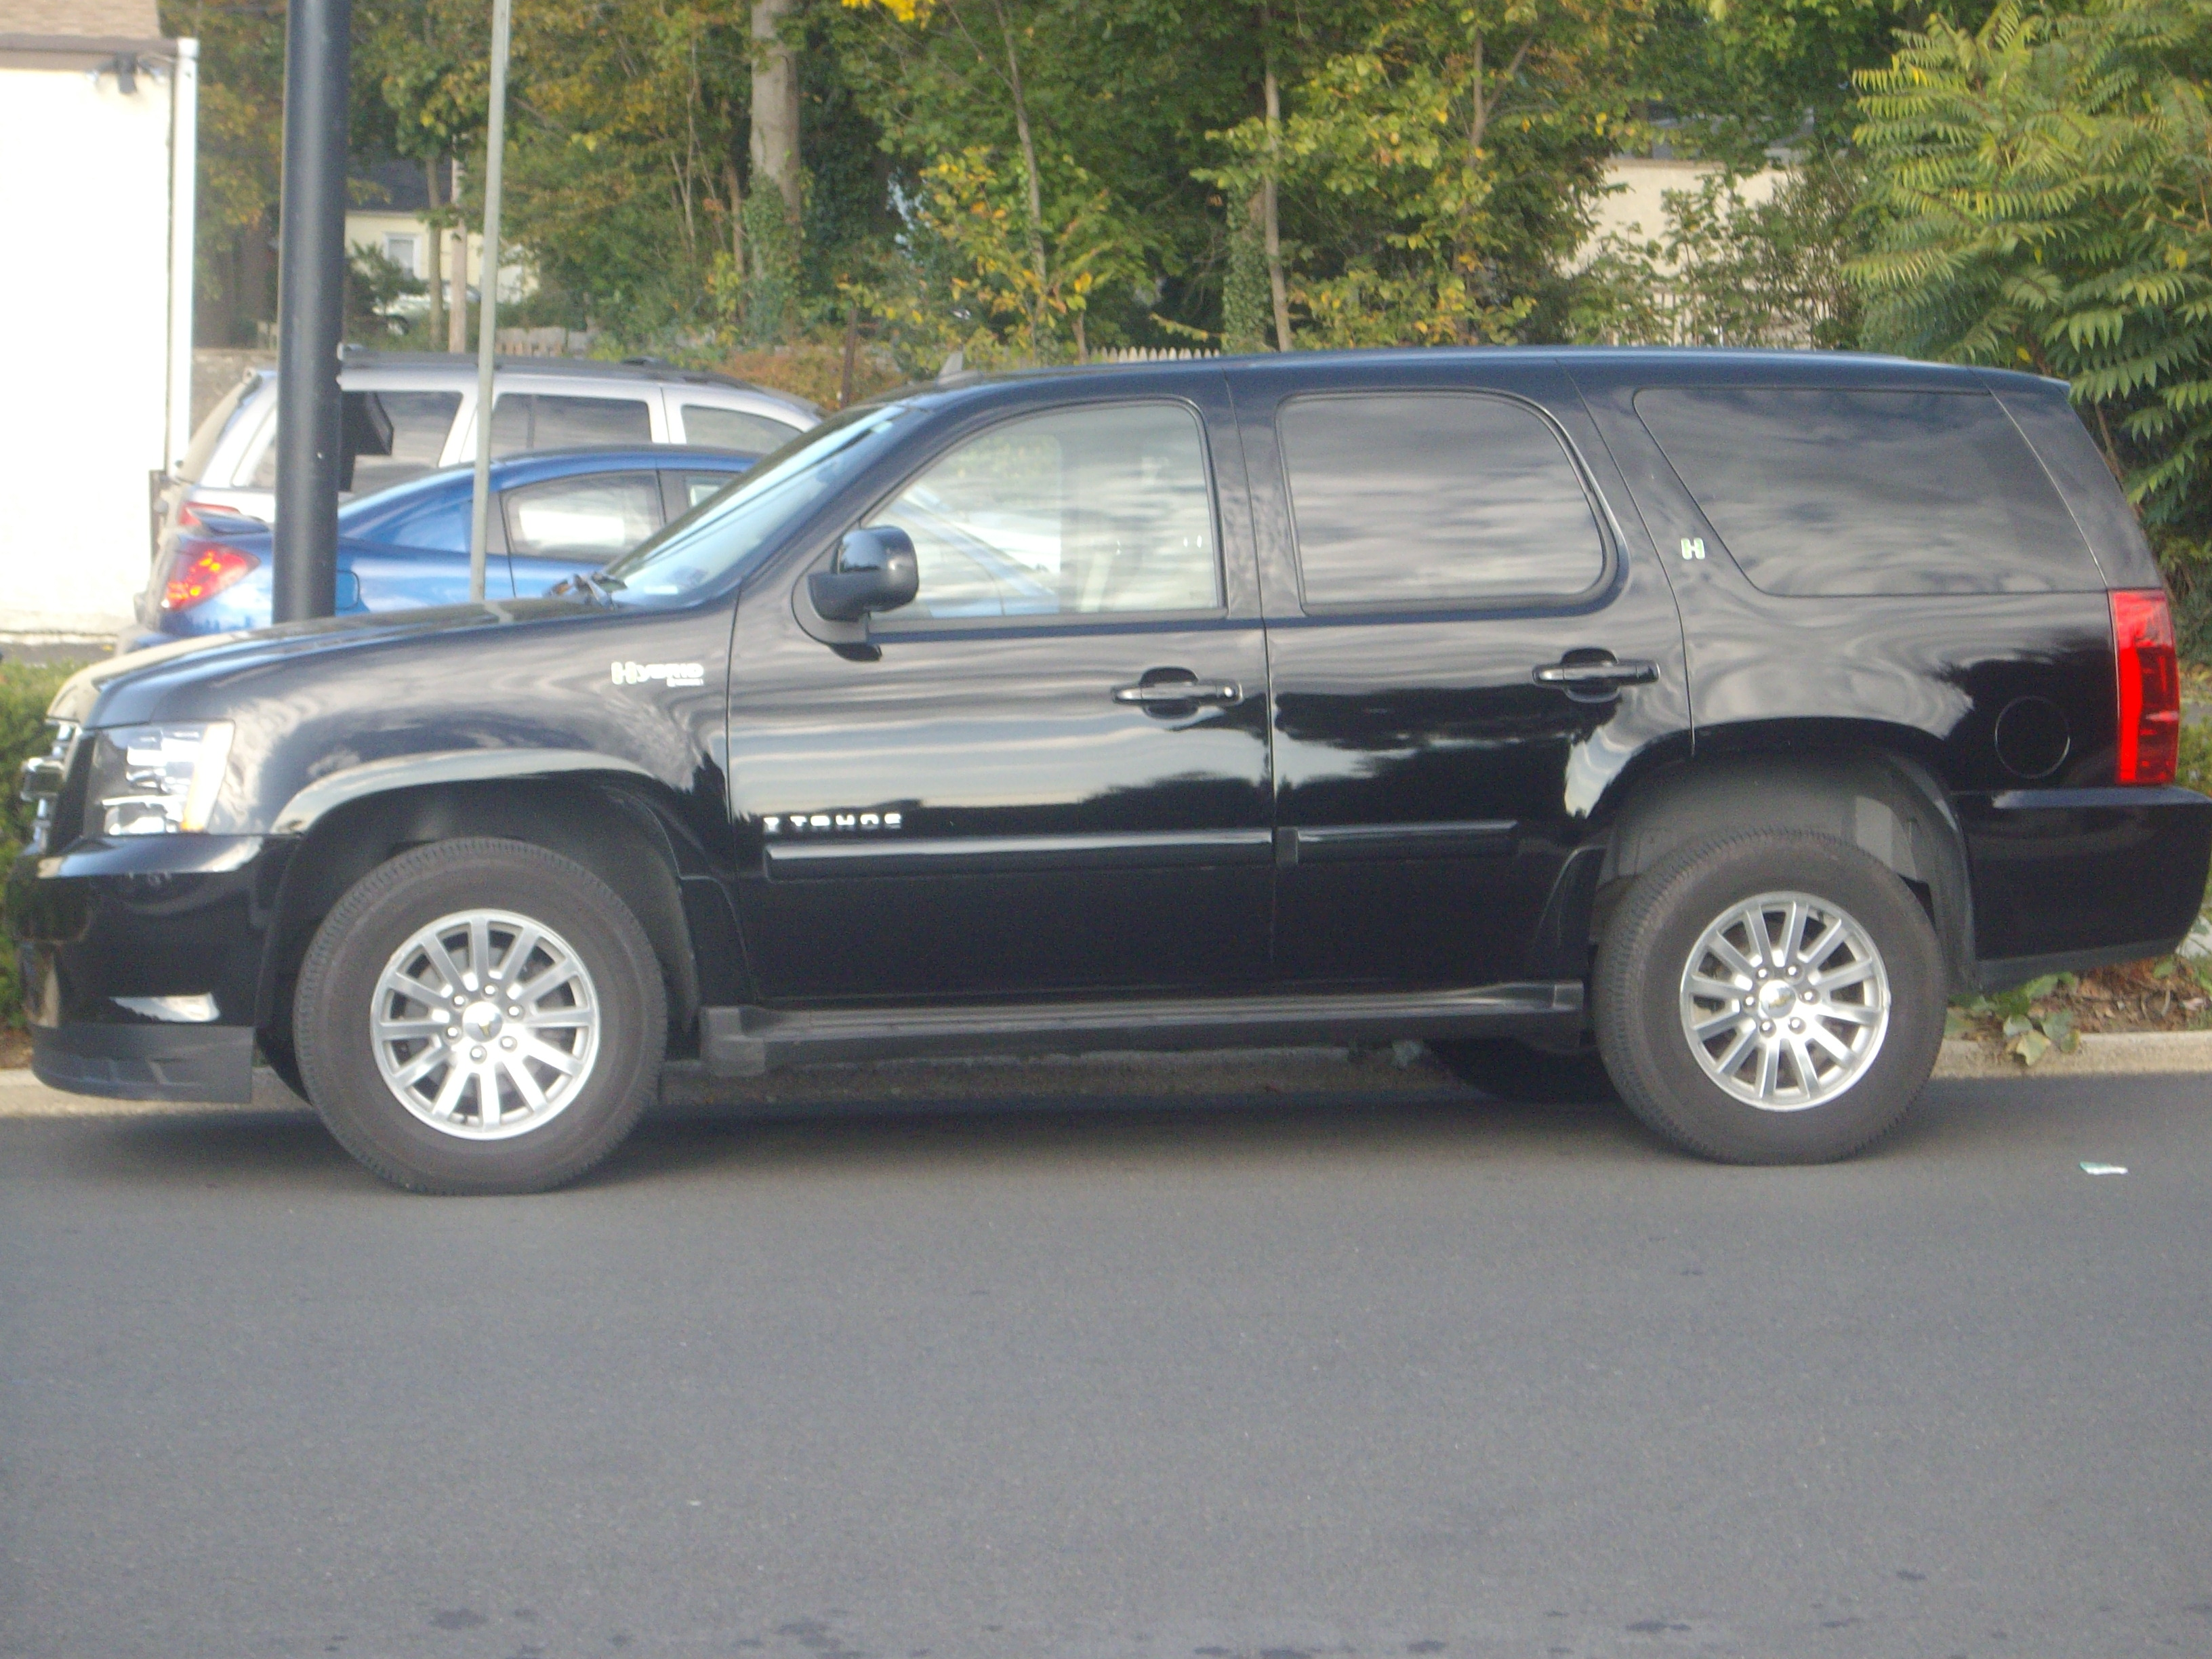 FileChevrolet Tahoe Hybrid USA 20081018jpg  Wikimedia Commons